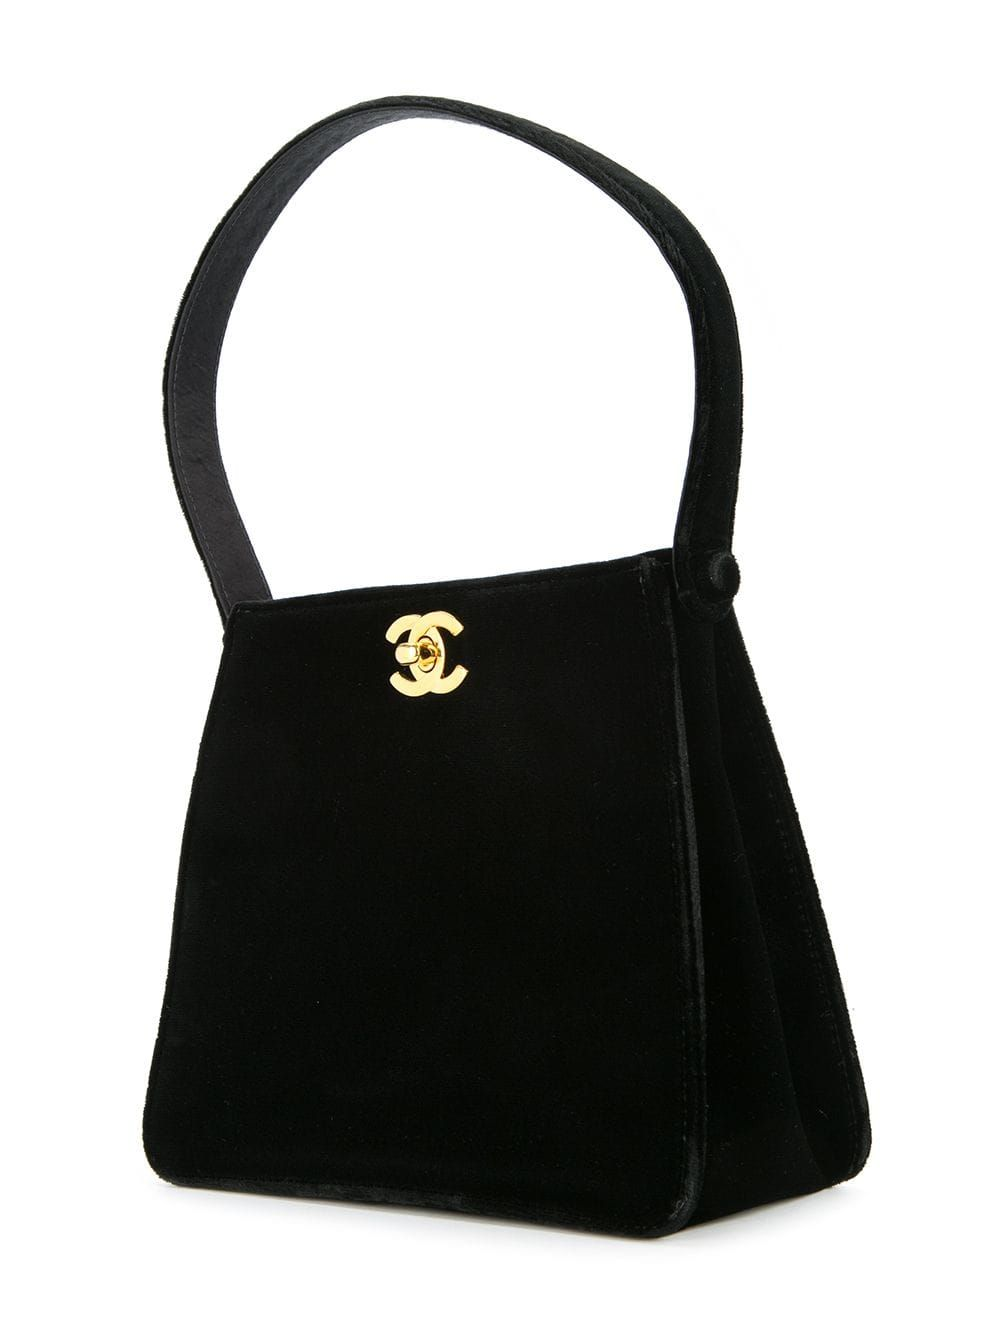 Chanel Pre Owned Cc Logo Quilted Hand Bag Farfetch In 2020 Chanel Pre Owned Vintage Chanel Bags